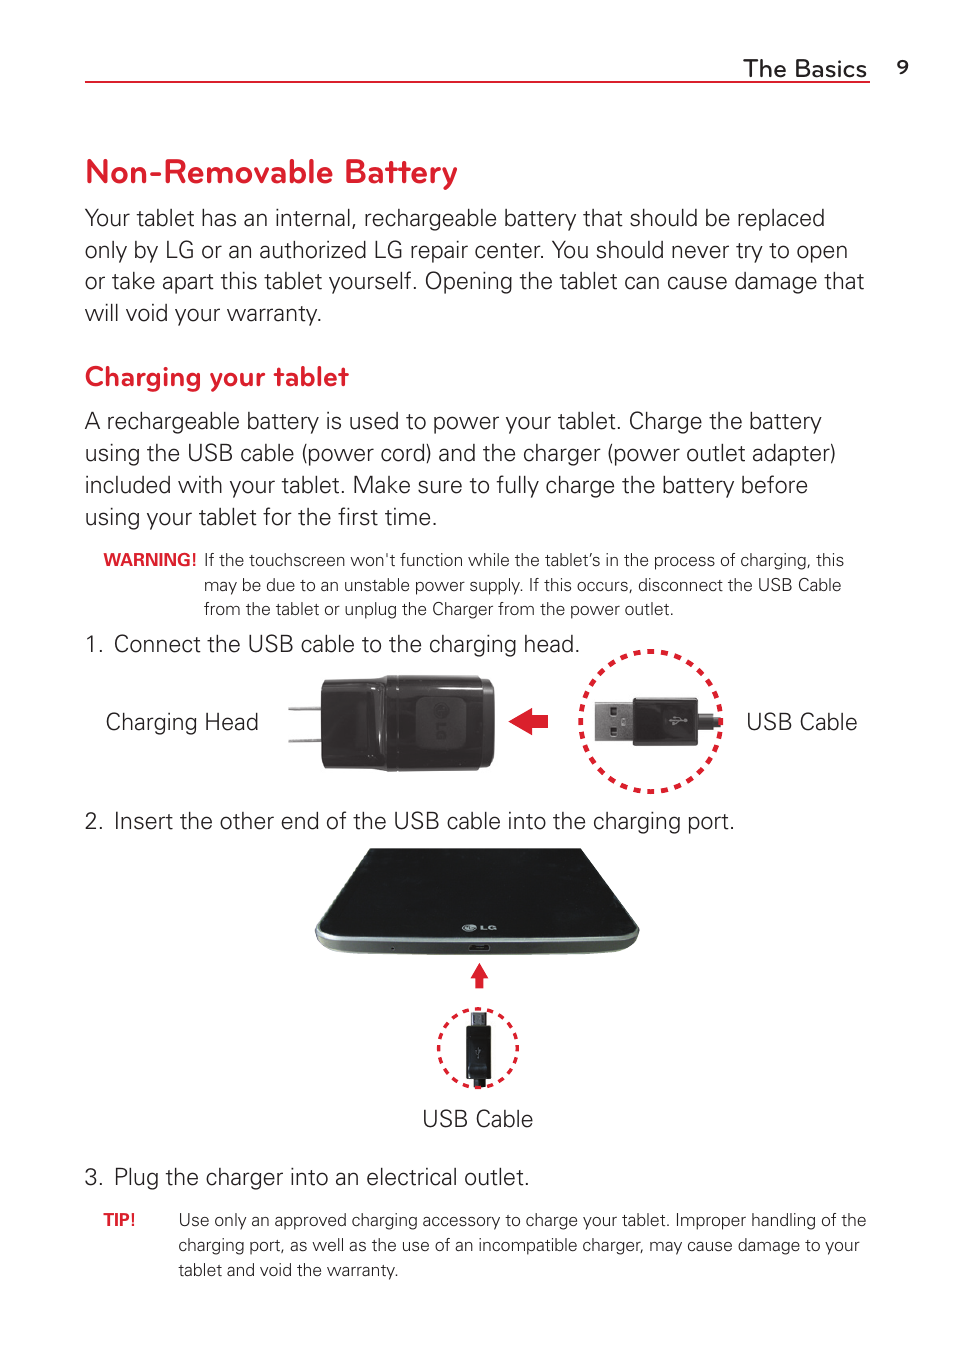 Non-removable battery, Charging your tablet, The basics | LG